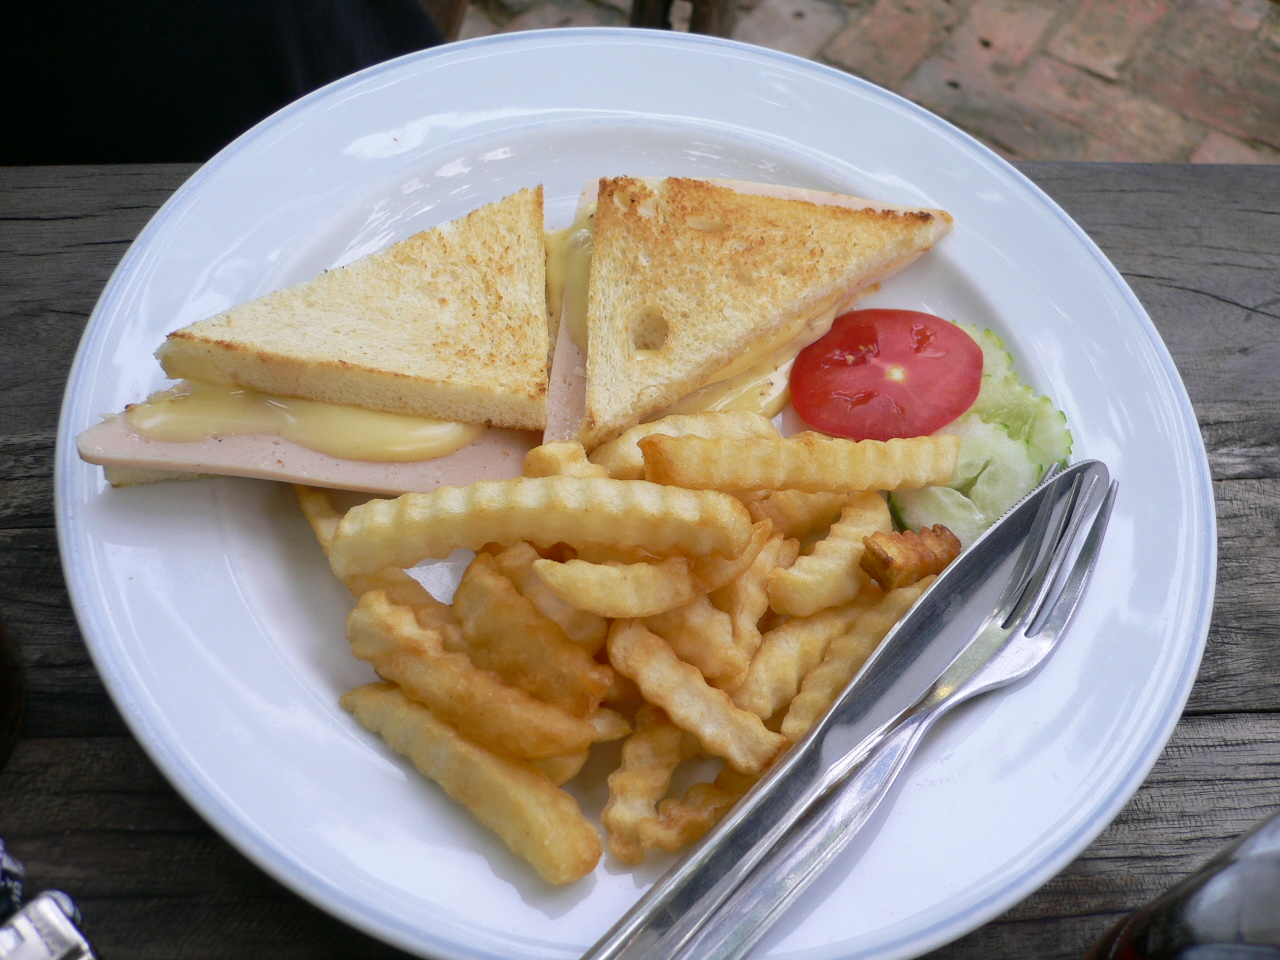 http://foodloader.net/xSh_2007-07-20_Toast_French_Fries.jpg